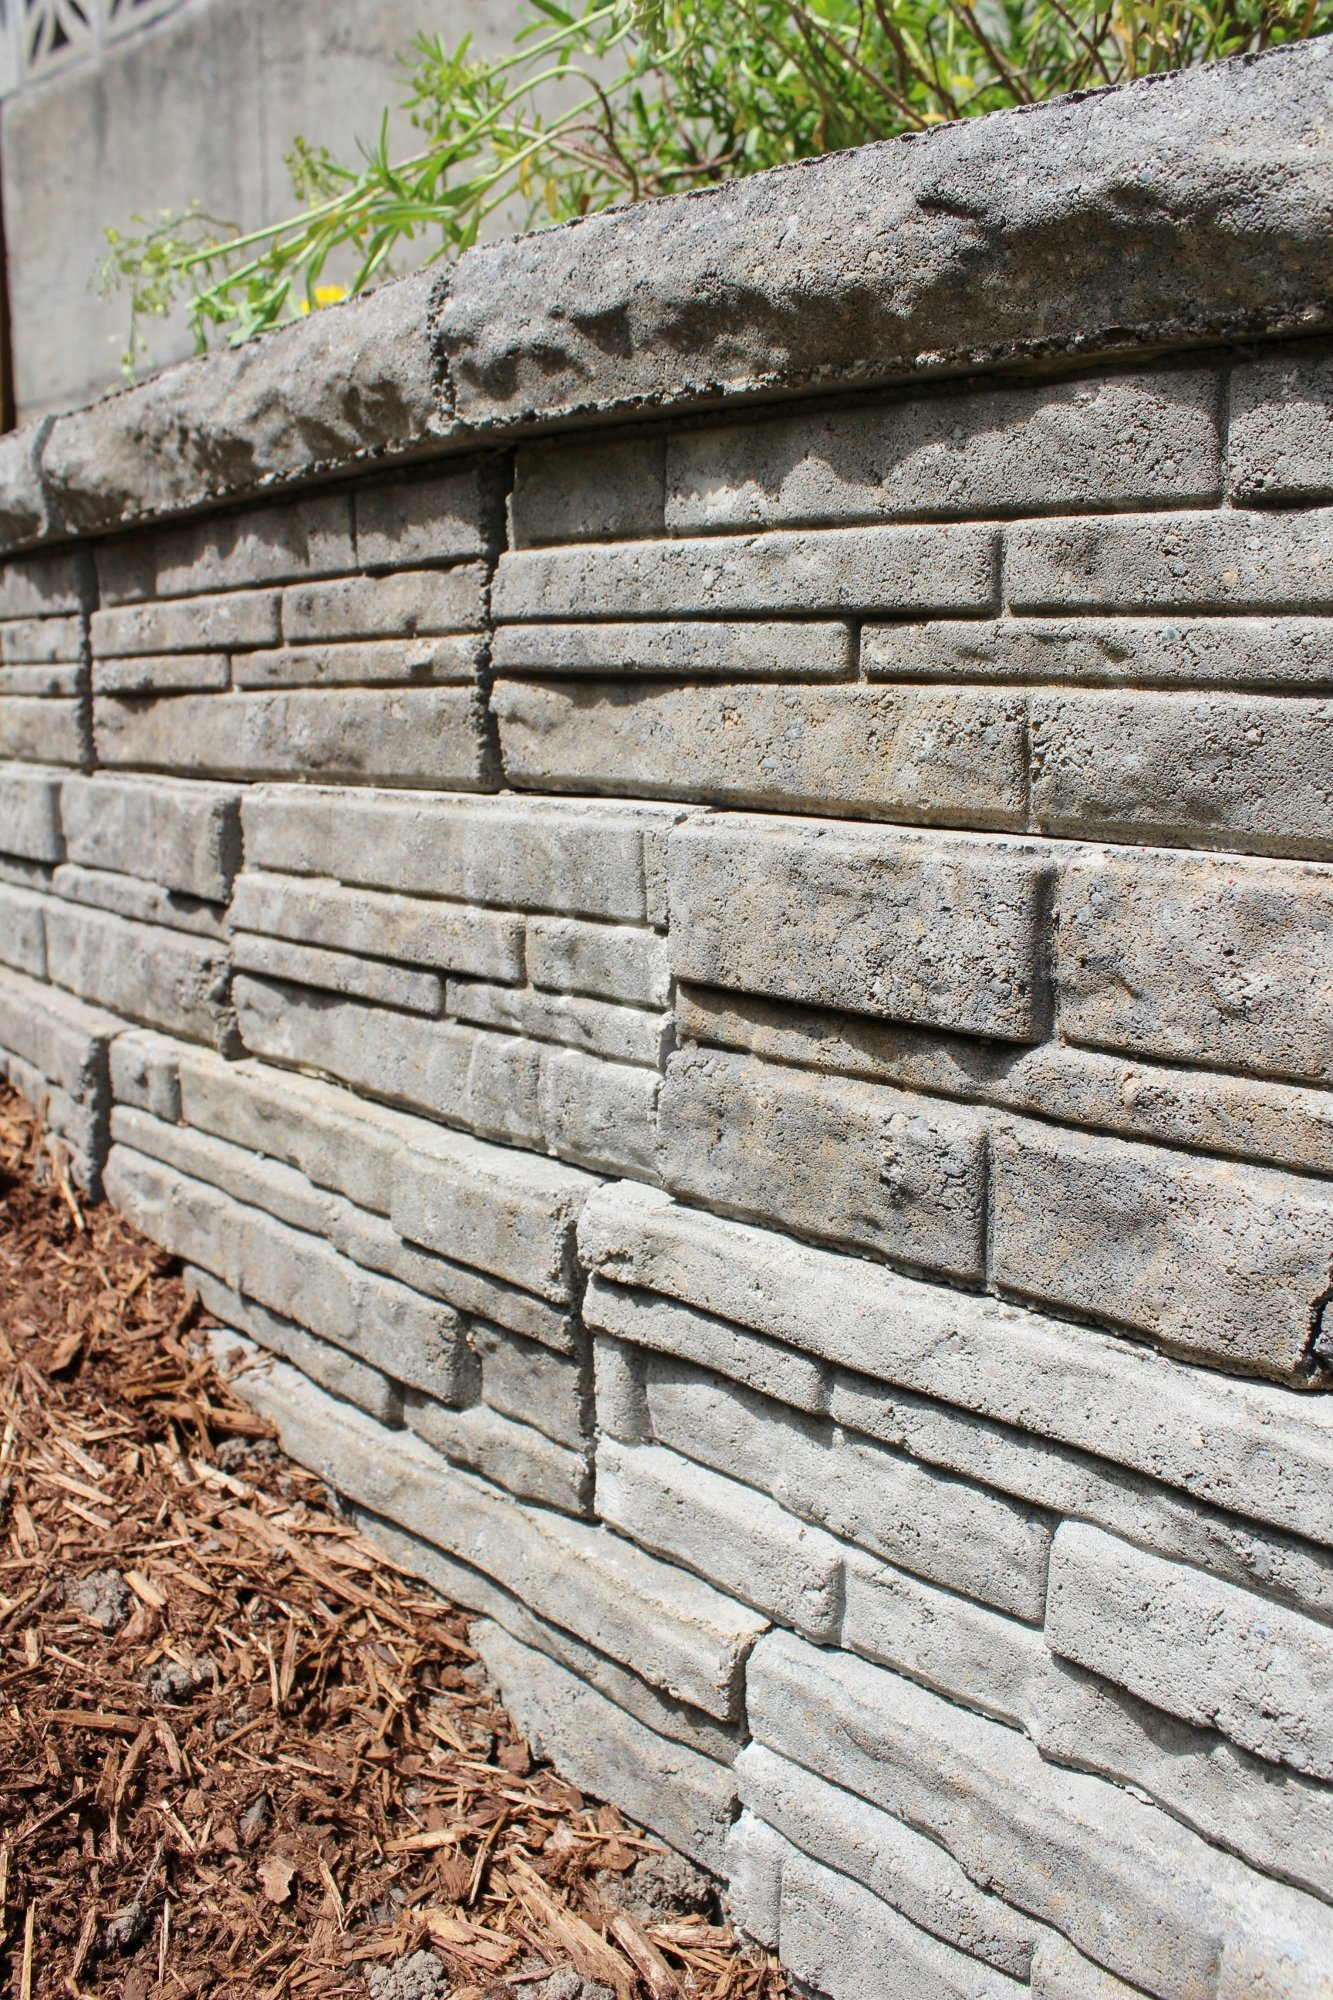 Lowe's ledgewall concrete retaining wall blocks in Arcadian color